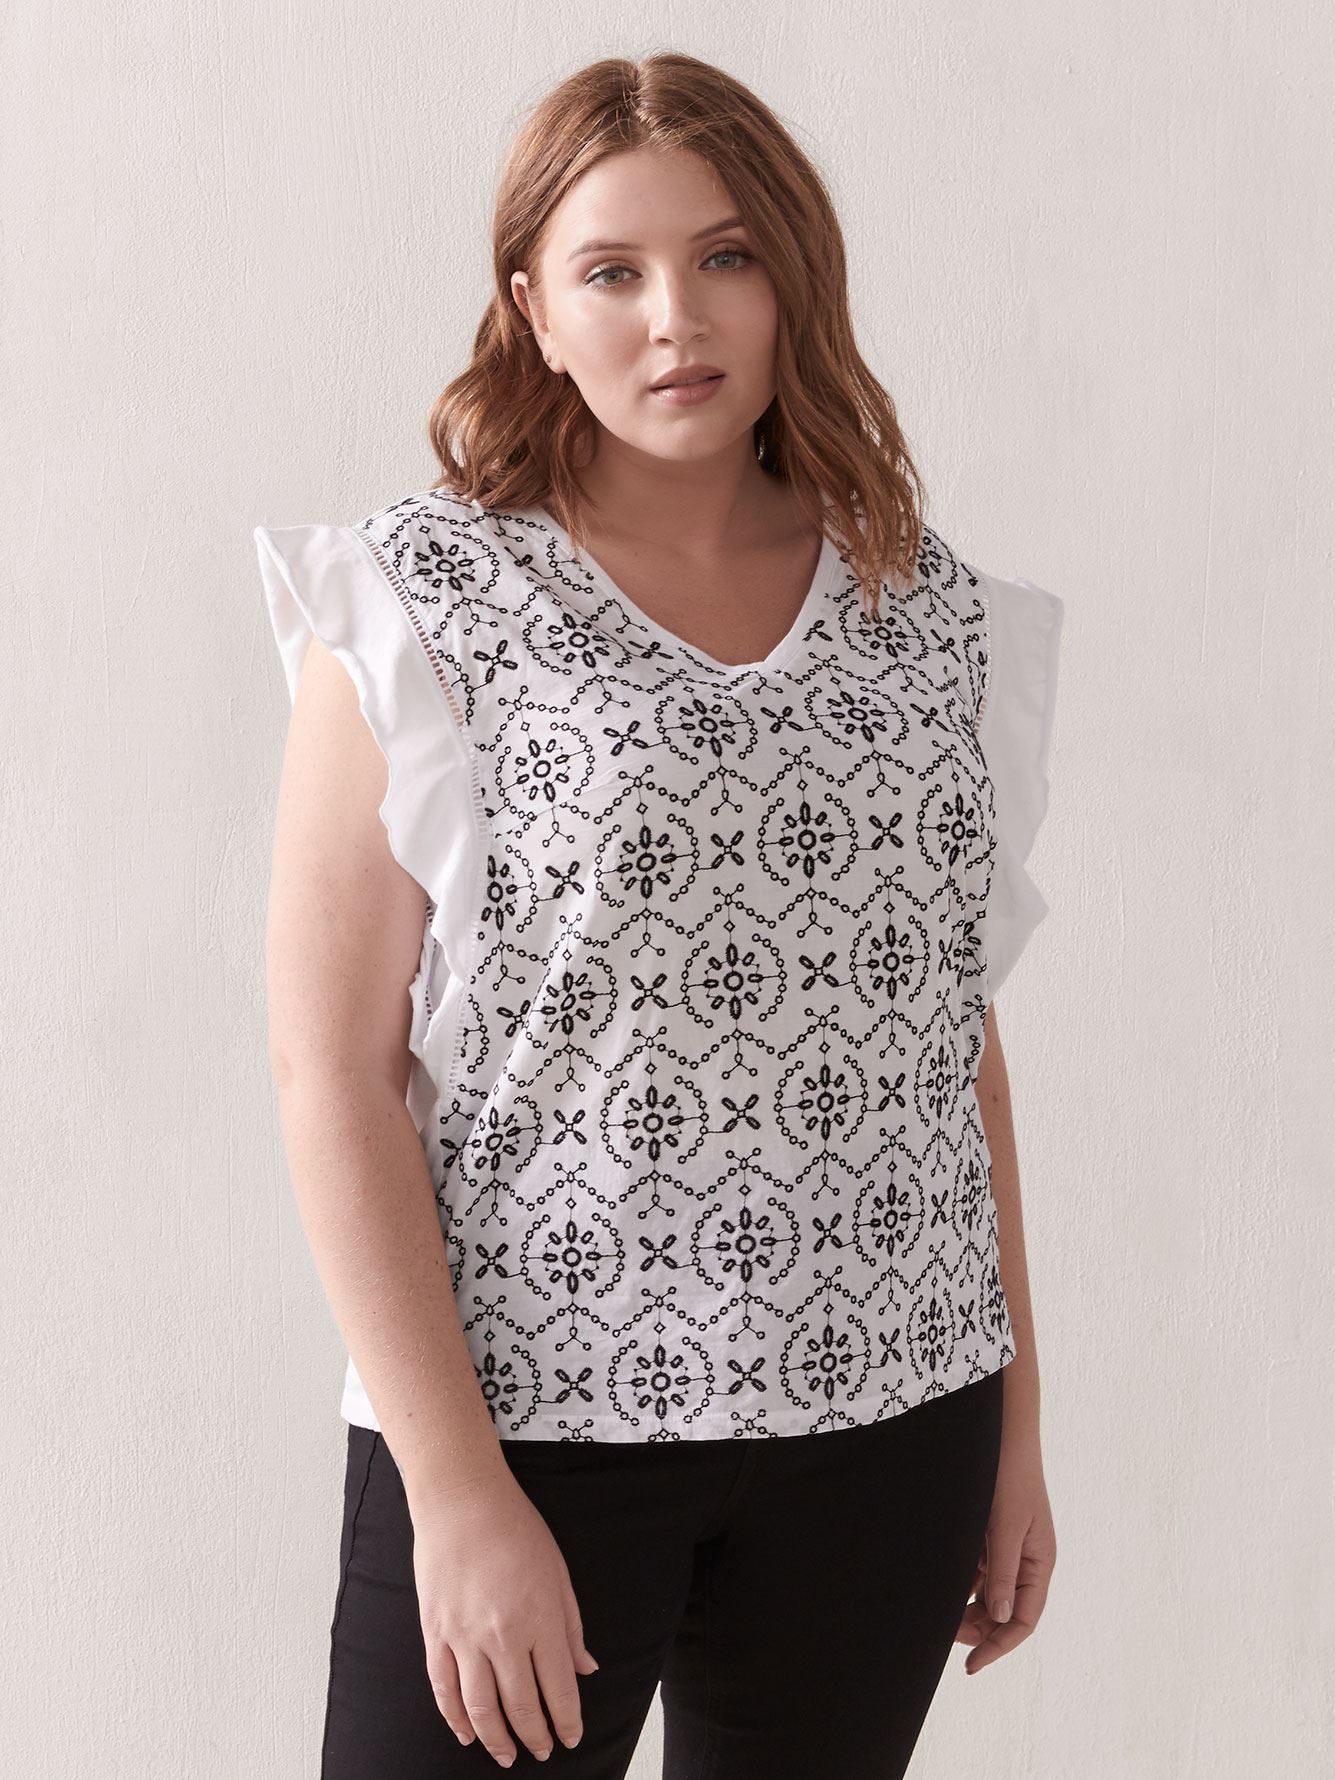 Flutte-Sleeve Mix Media Top - Addition Elle